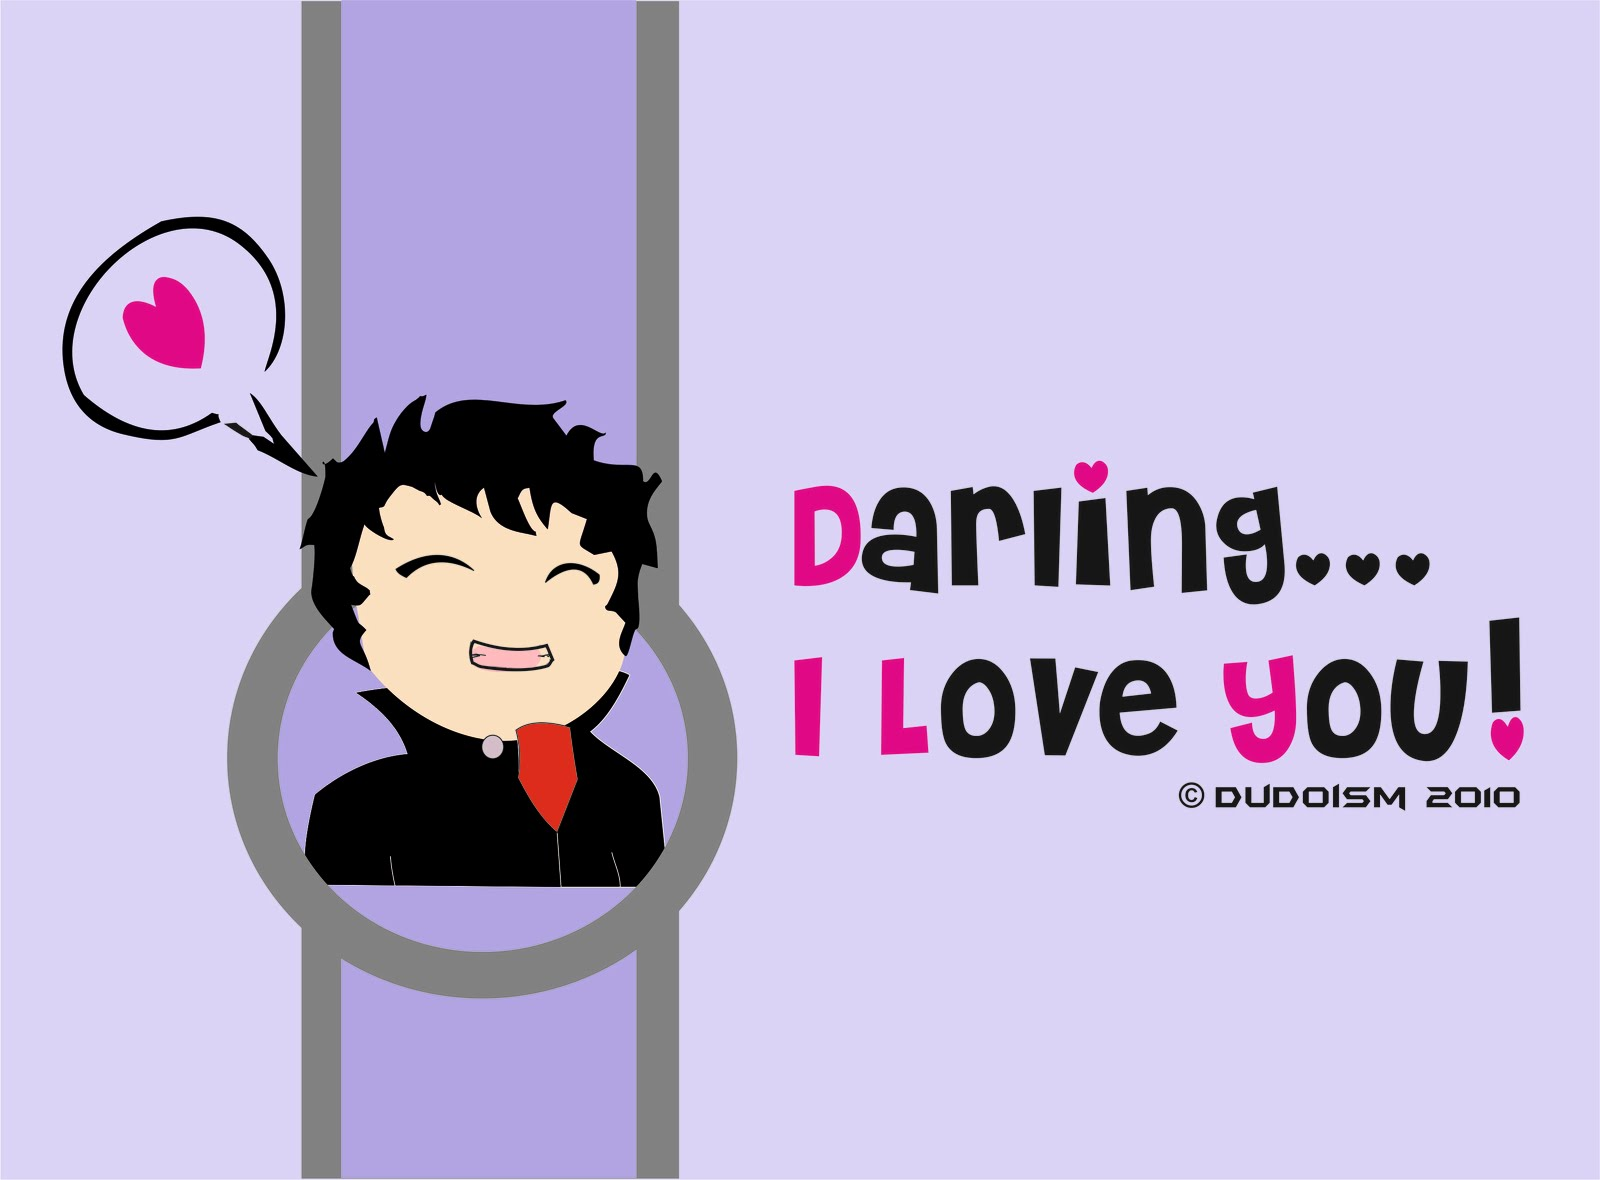 Wallpaper I Love You Darling : Darling I love you!!! Blank Thoughts, Life Bites, Life Bleeds